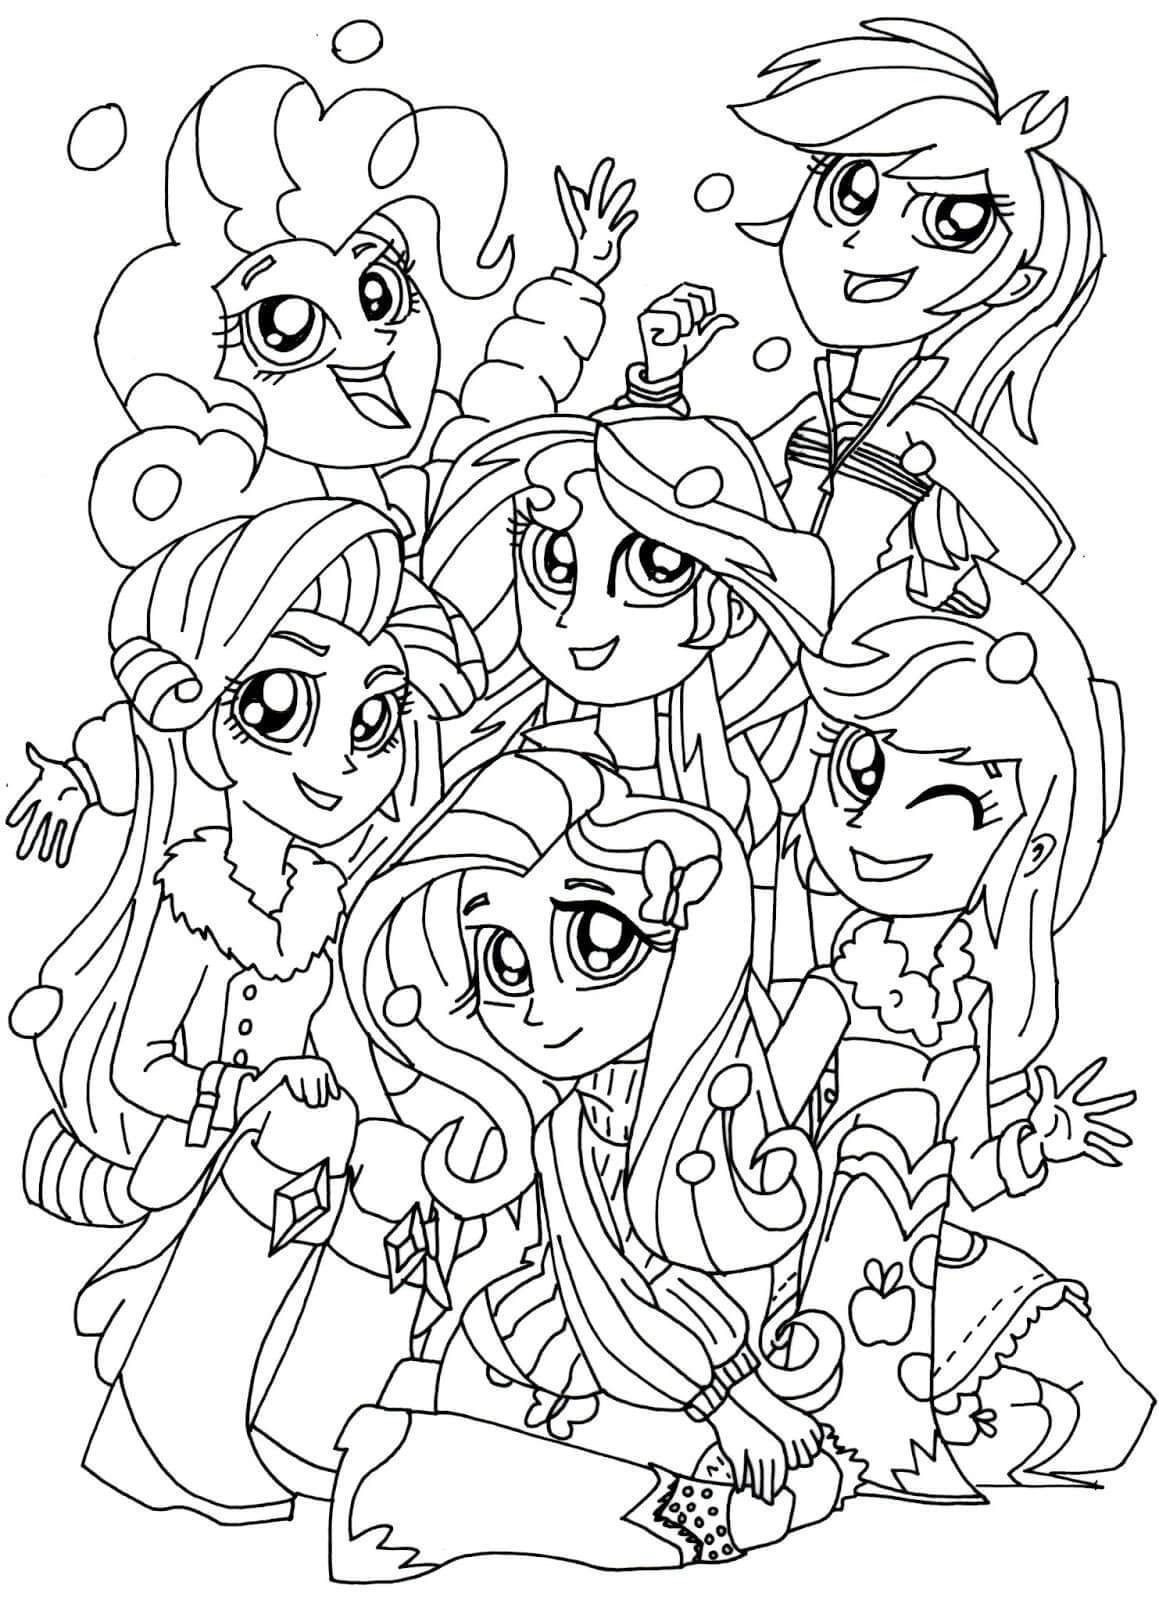 Best ideas about Coloring Pages For Girls My Little Pony . Save or Pin My Little Pony Equestria Girls Coloring Pages Now.